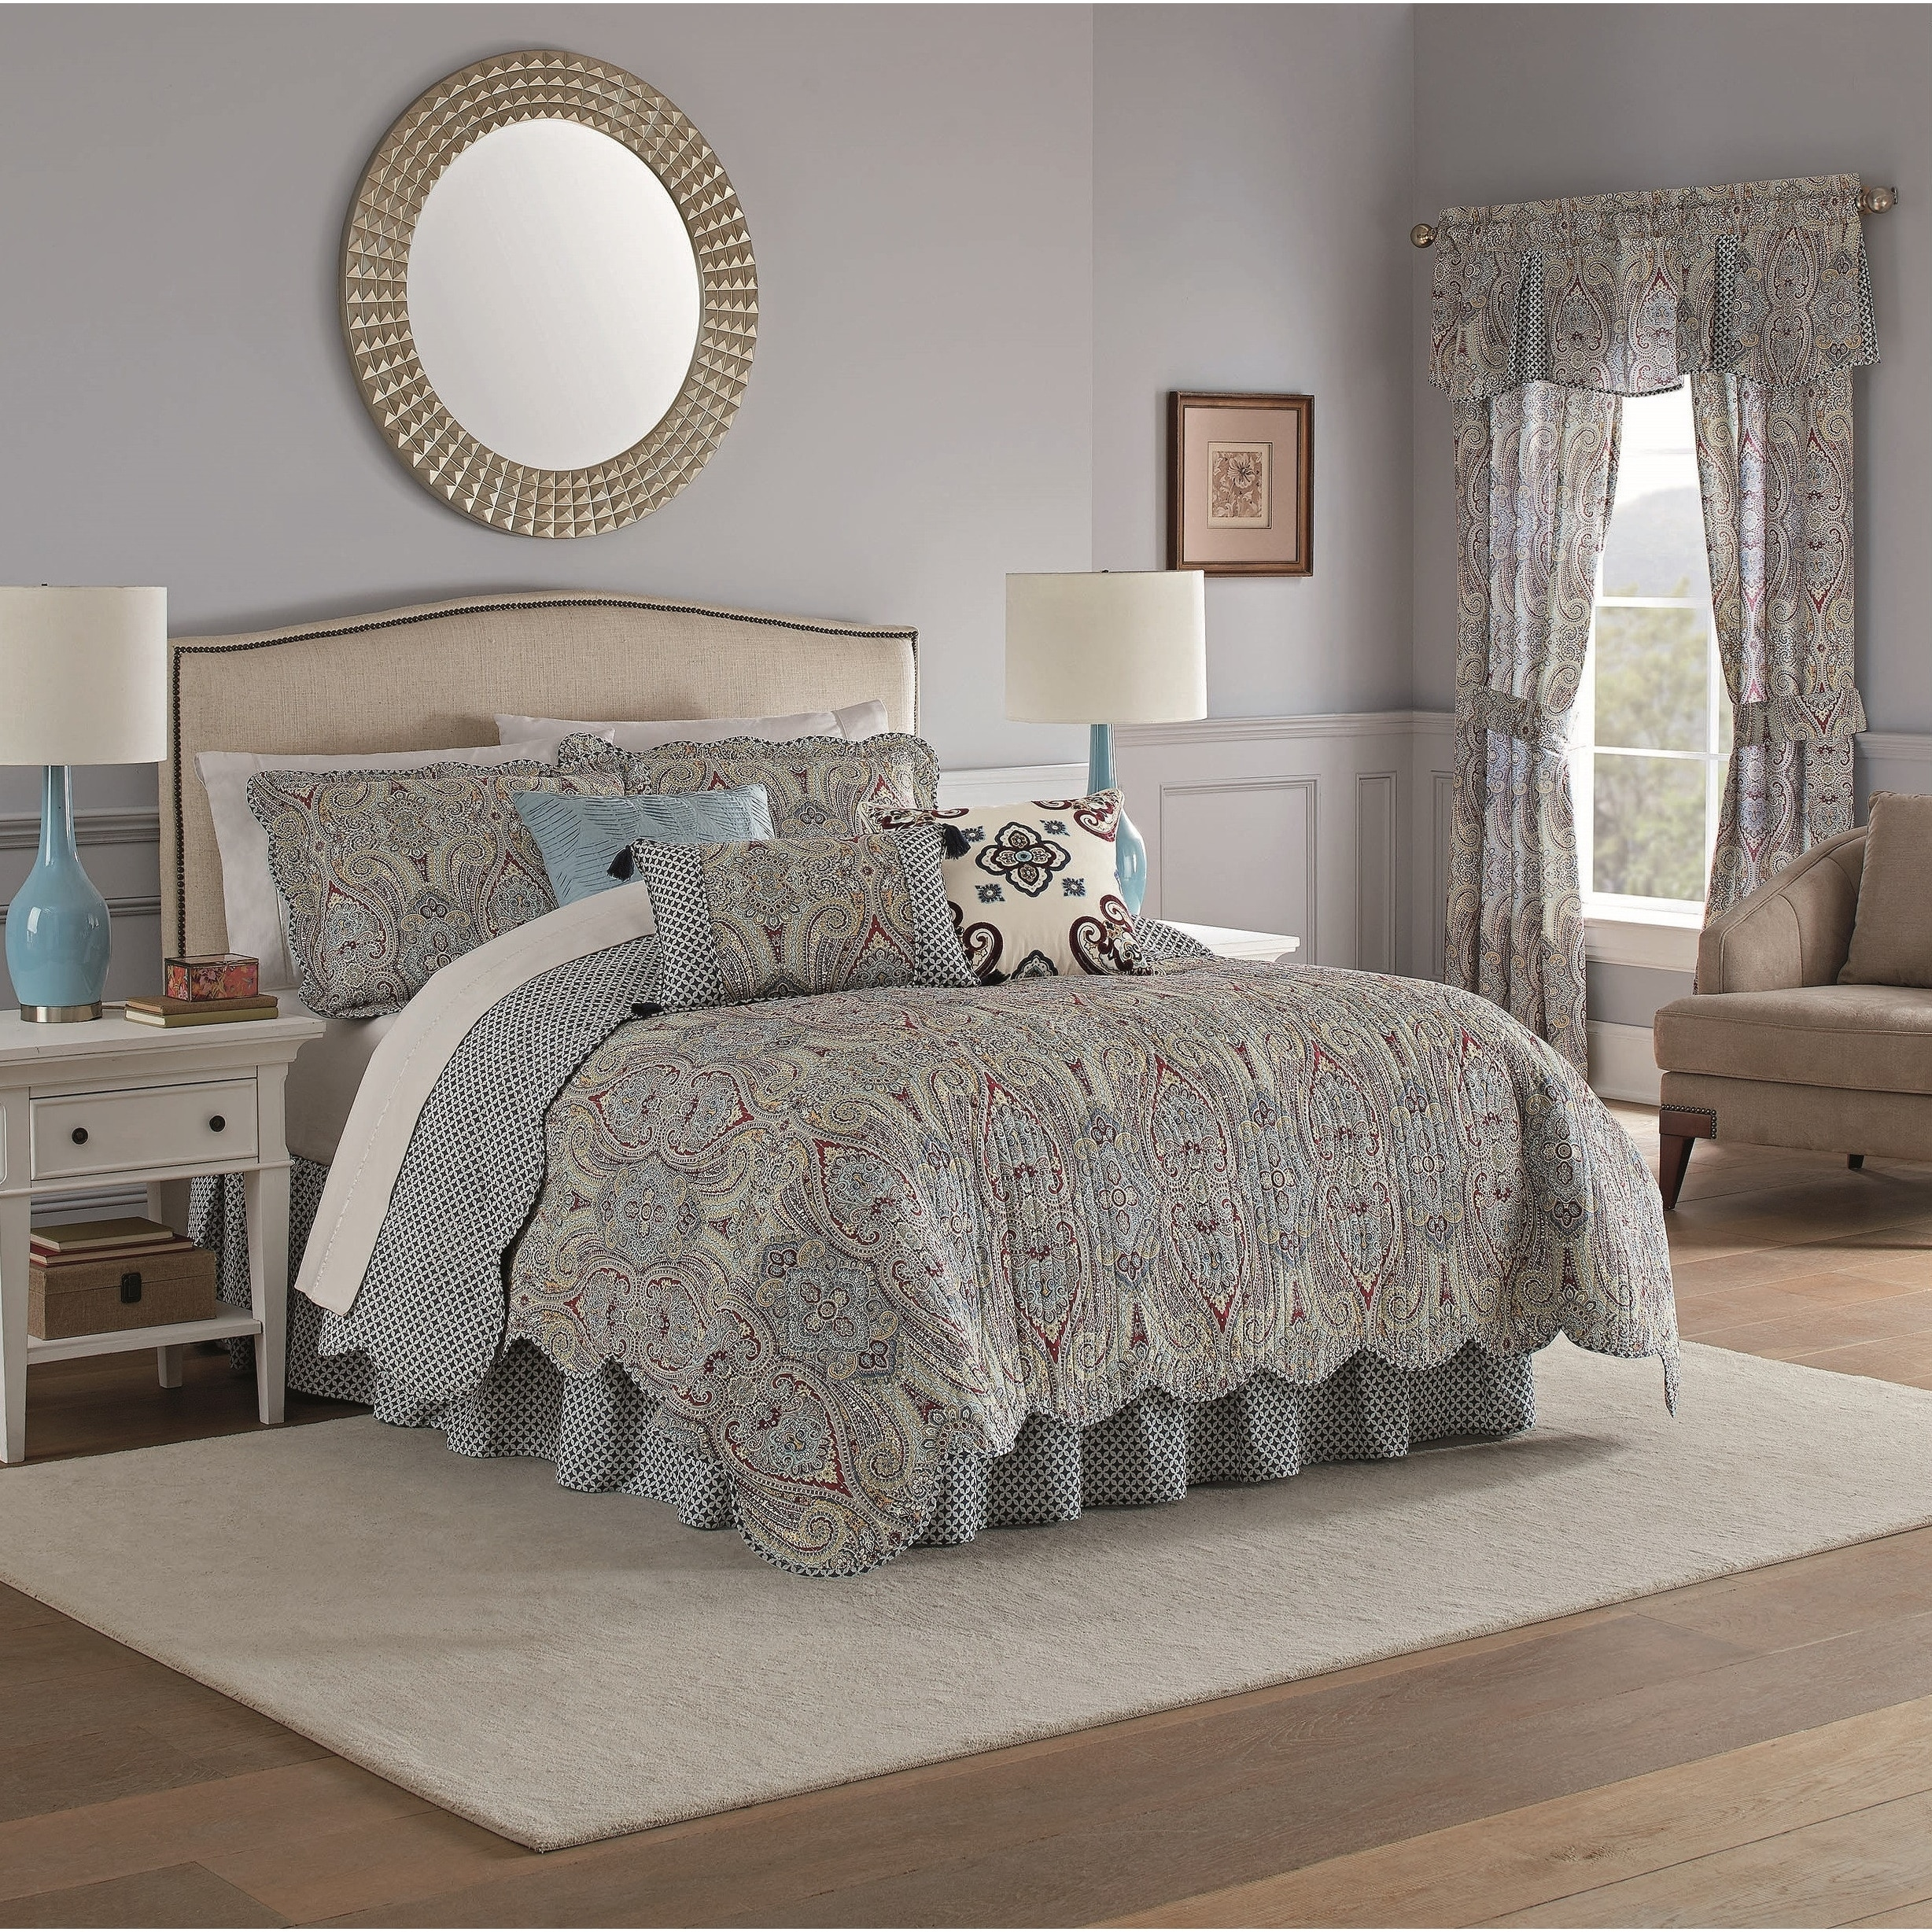 Shop Waverly Paisley Pizzazz Quilt Set Overstock 28586977 Twin